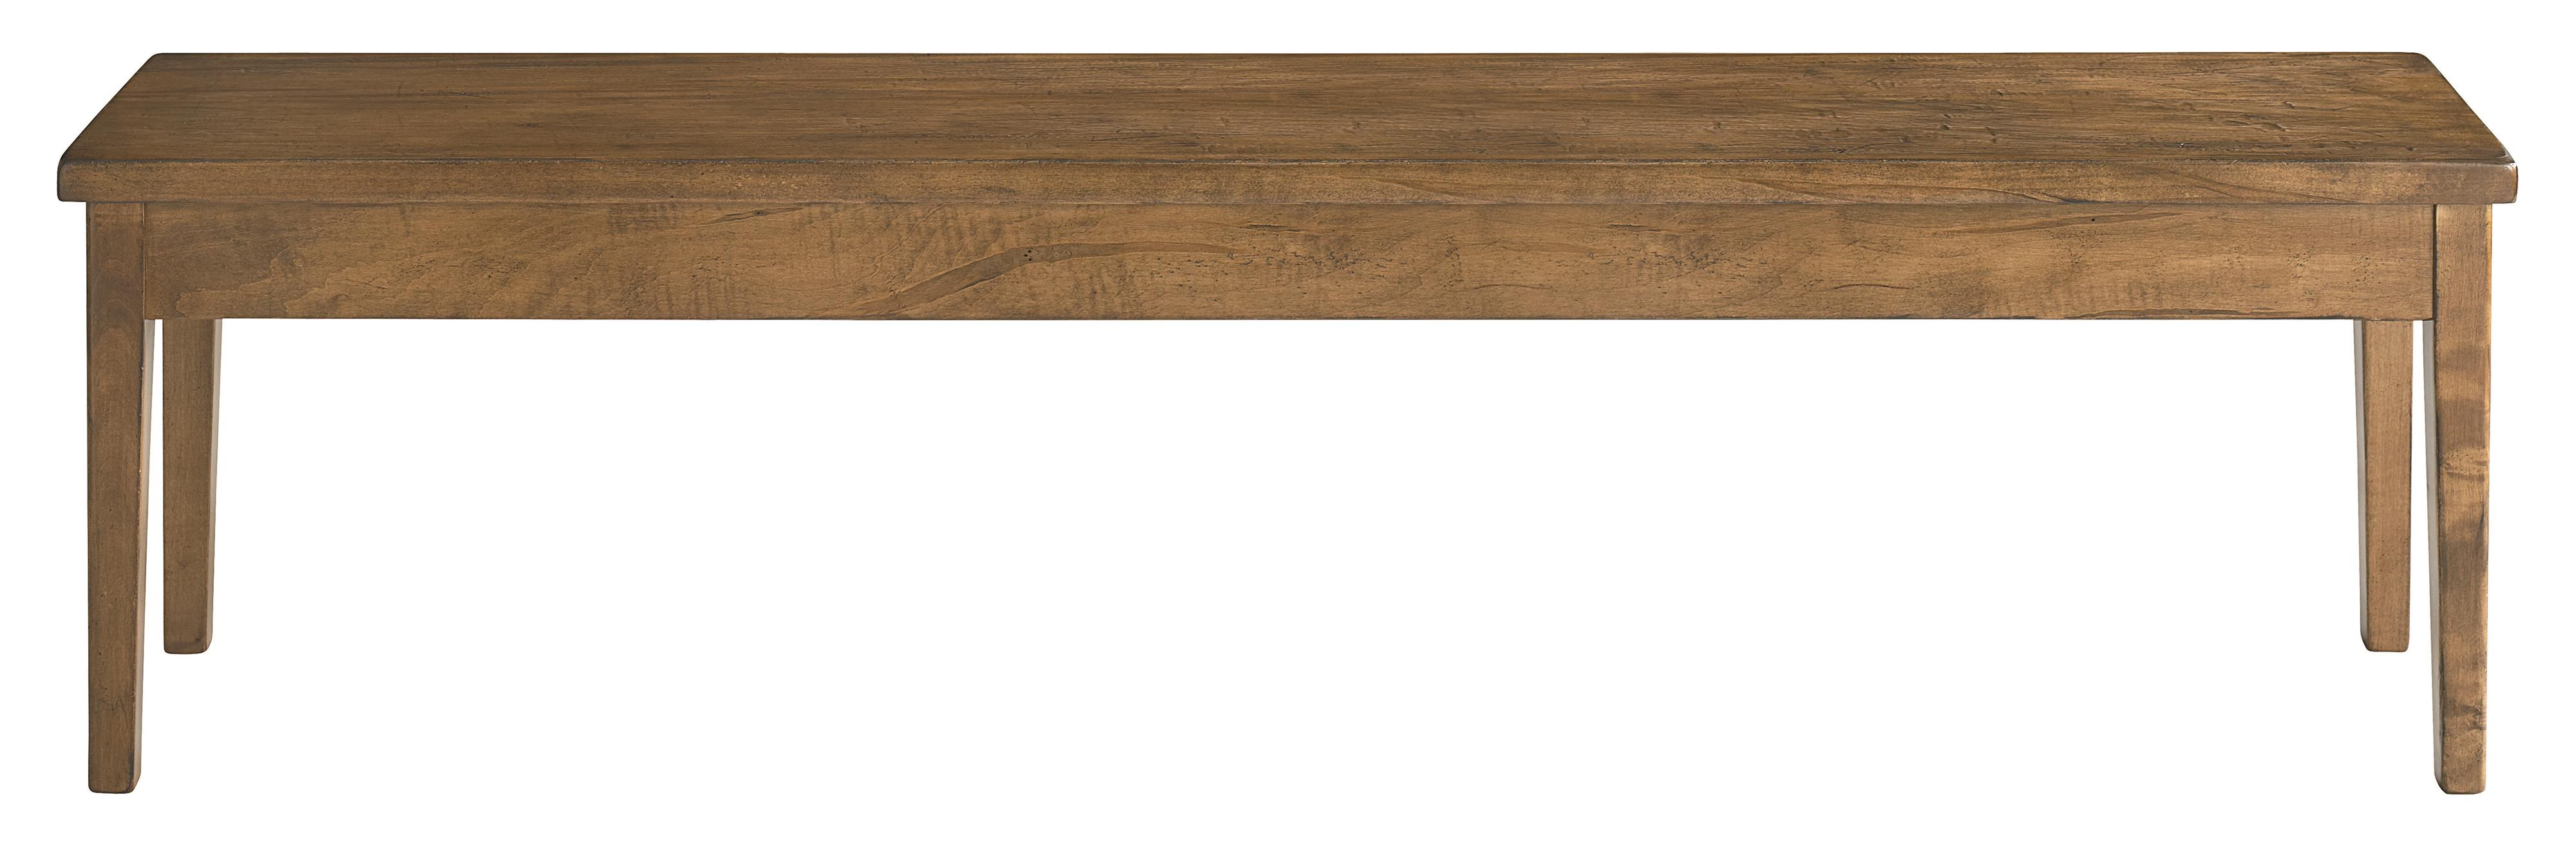 """Bench Made Maple 60"""" Hearthside Bench by Bassett at Virginia Furniture Market"""